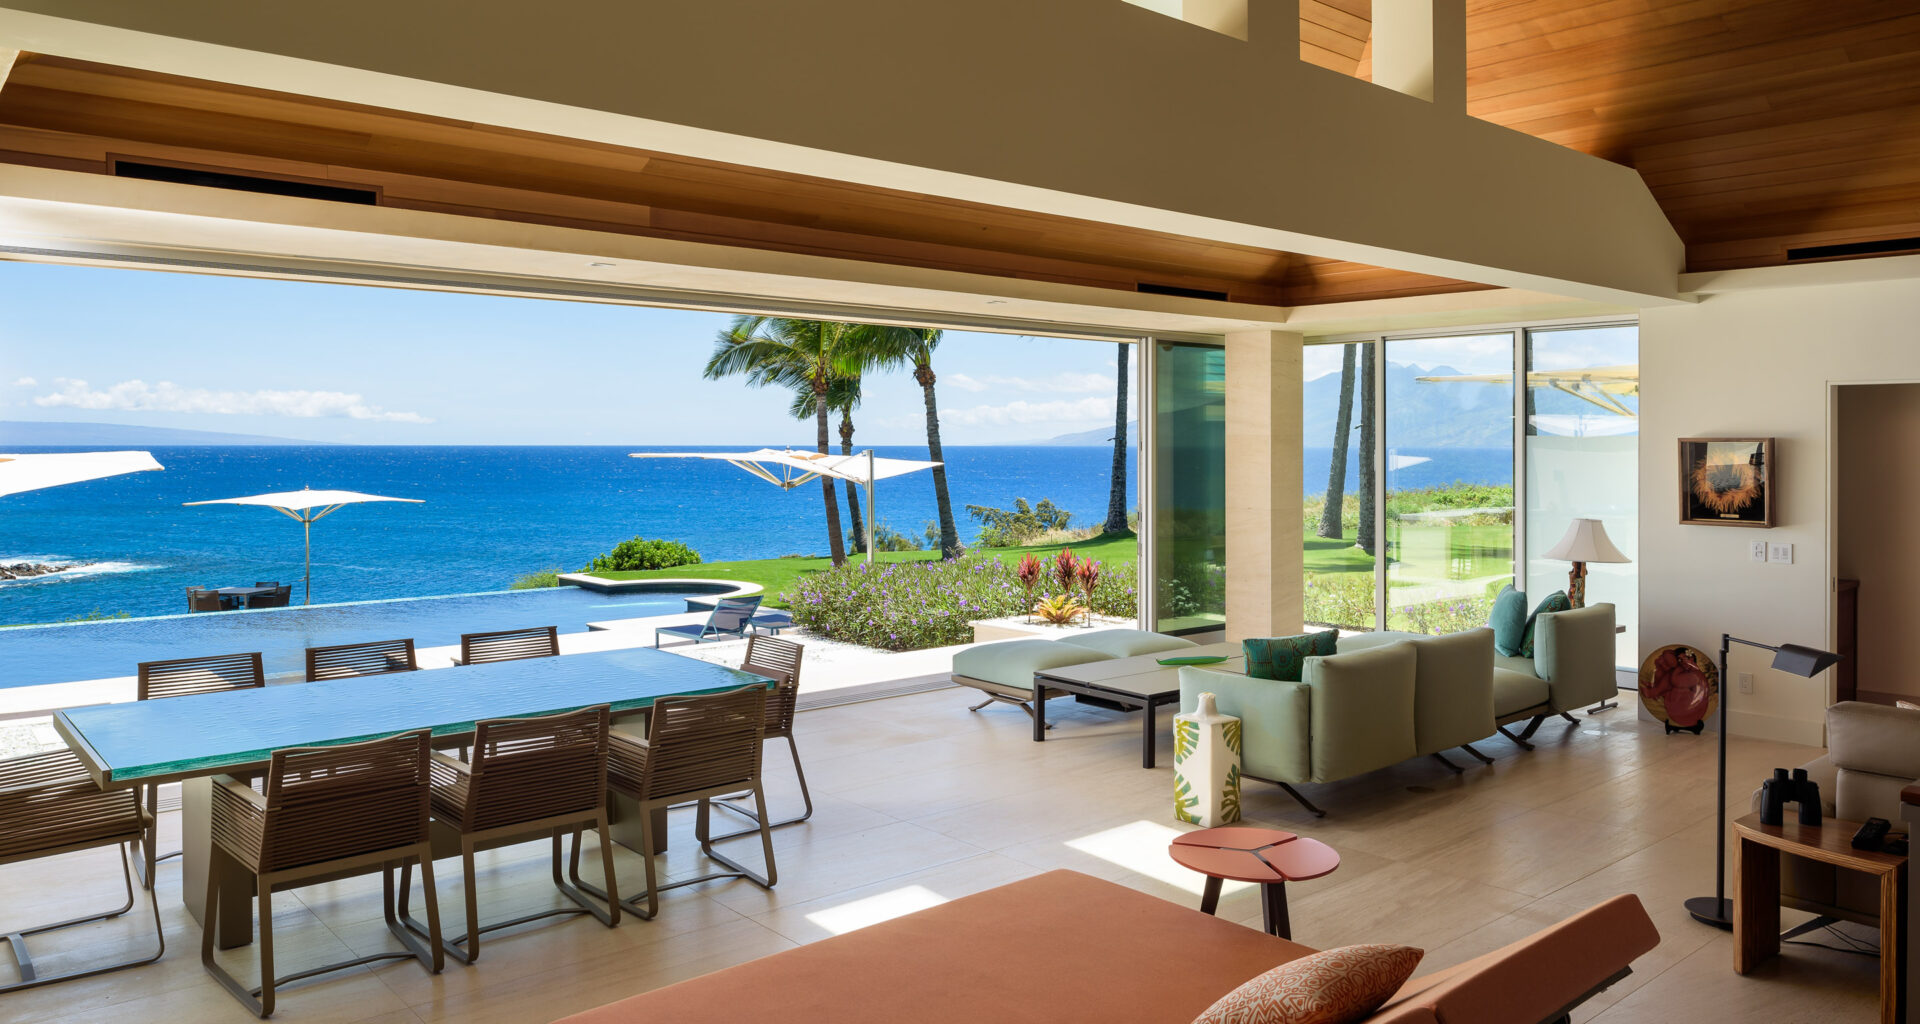 Mary Anne Fitch, Hawaii Life Real Estate Brokers, 9 Bay Drive, Kapalua, Maui